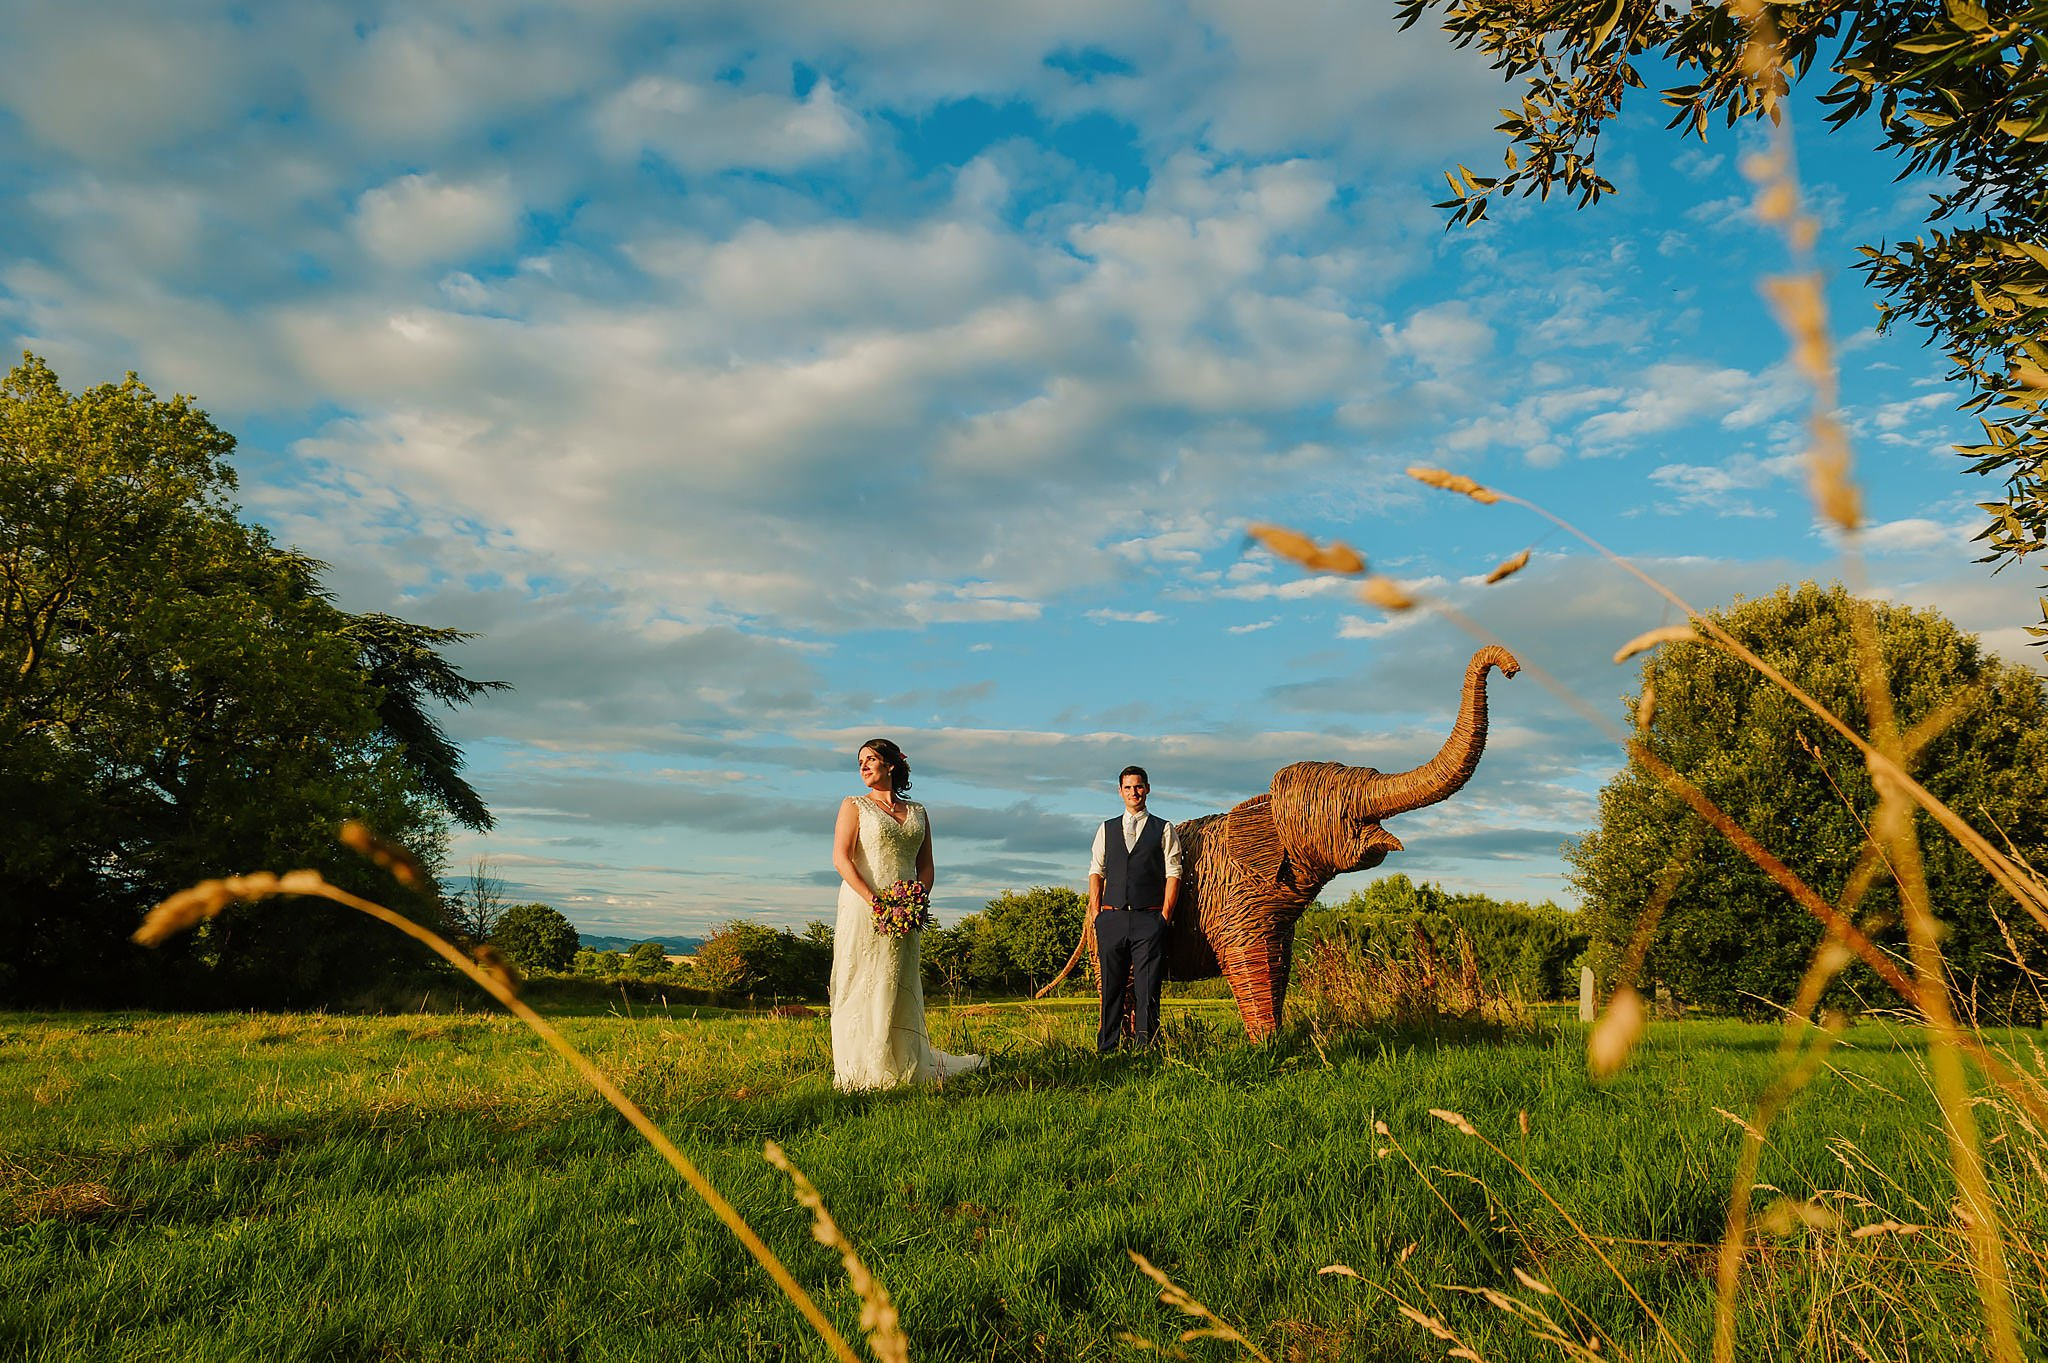 Wedding photography at Hellens Manor in Herefordshire, West Midlands | Shelley + Ian 41